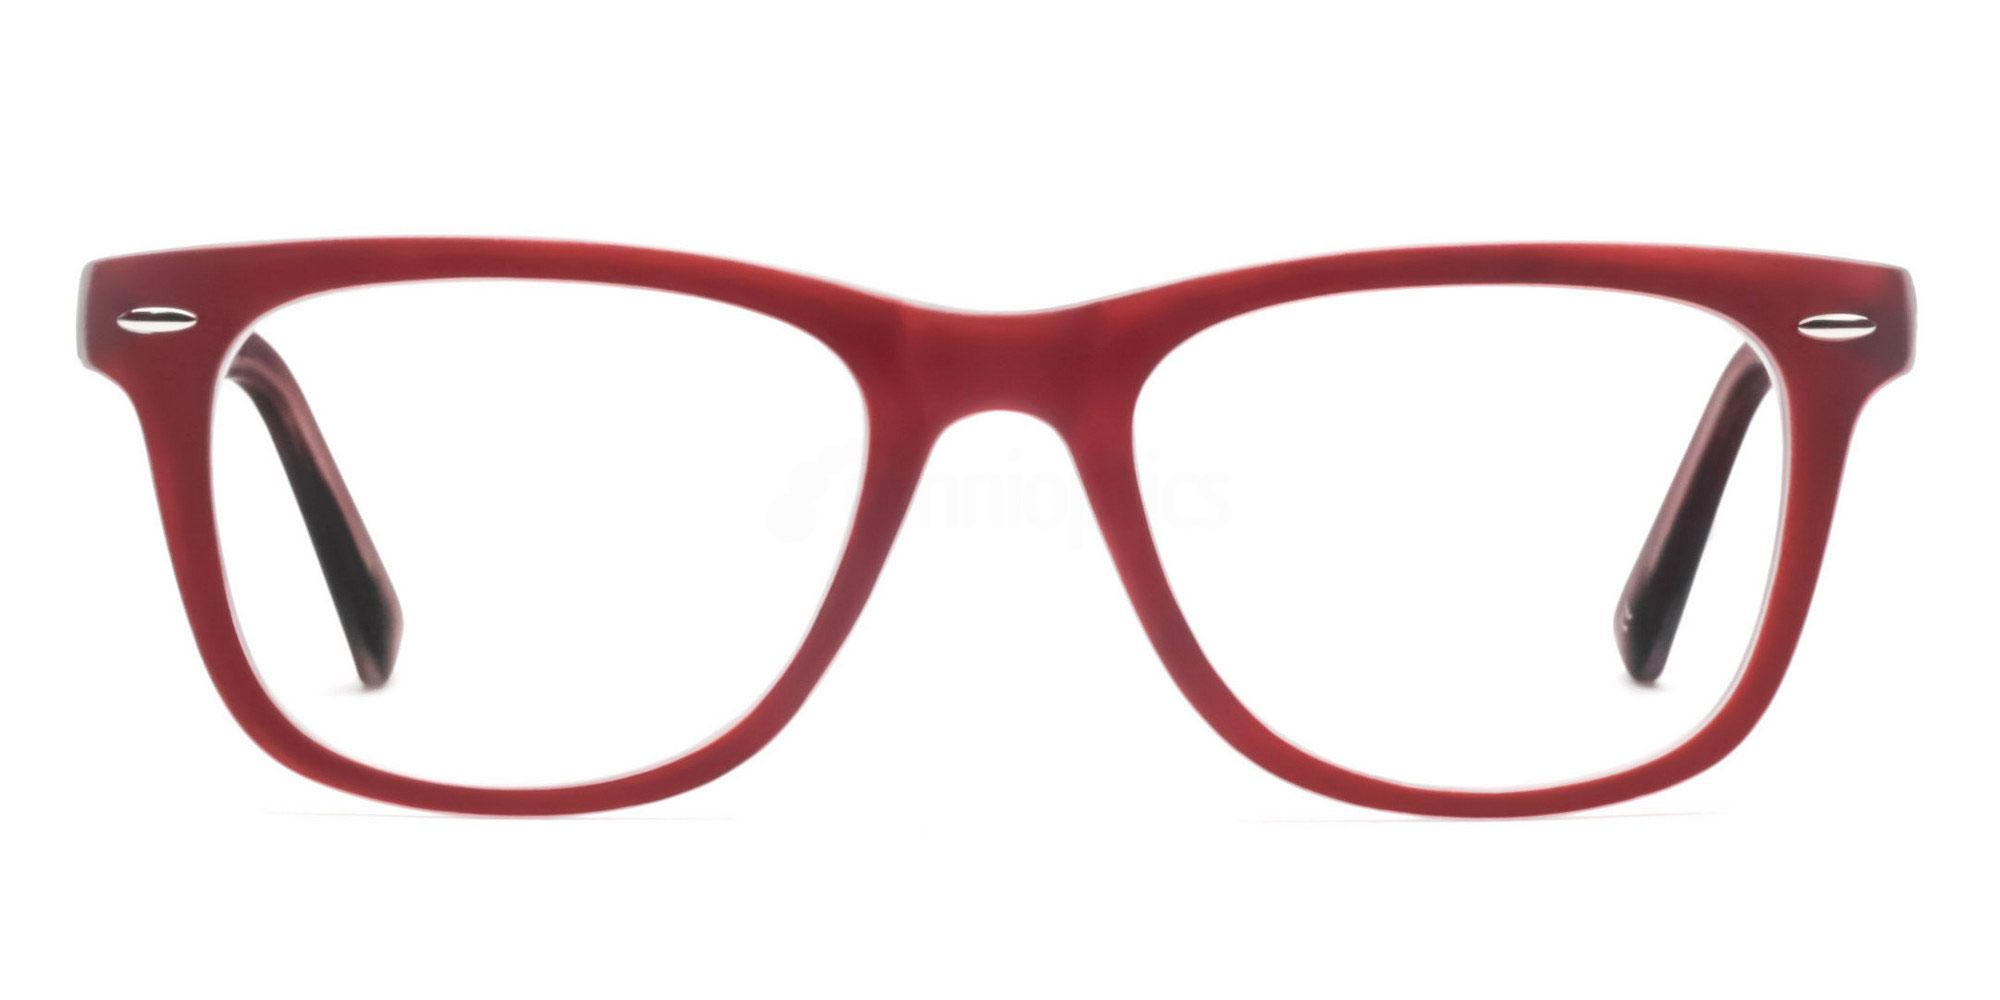 C13 8121 - Maroon on Transparent , Savannah